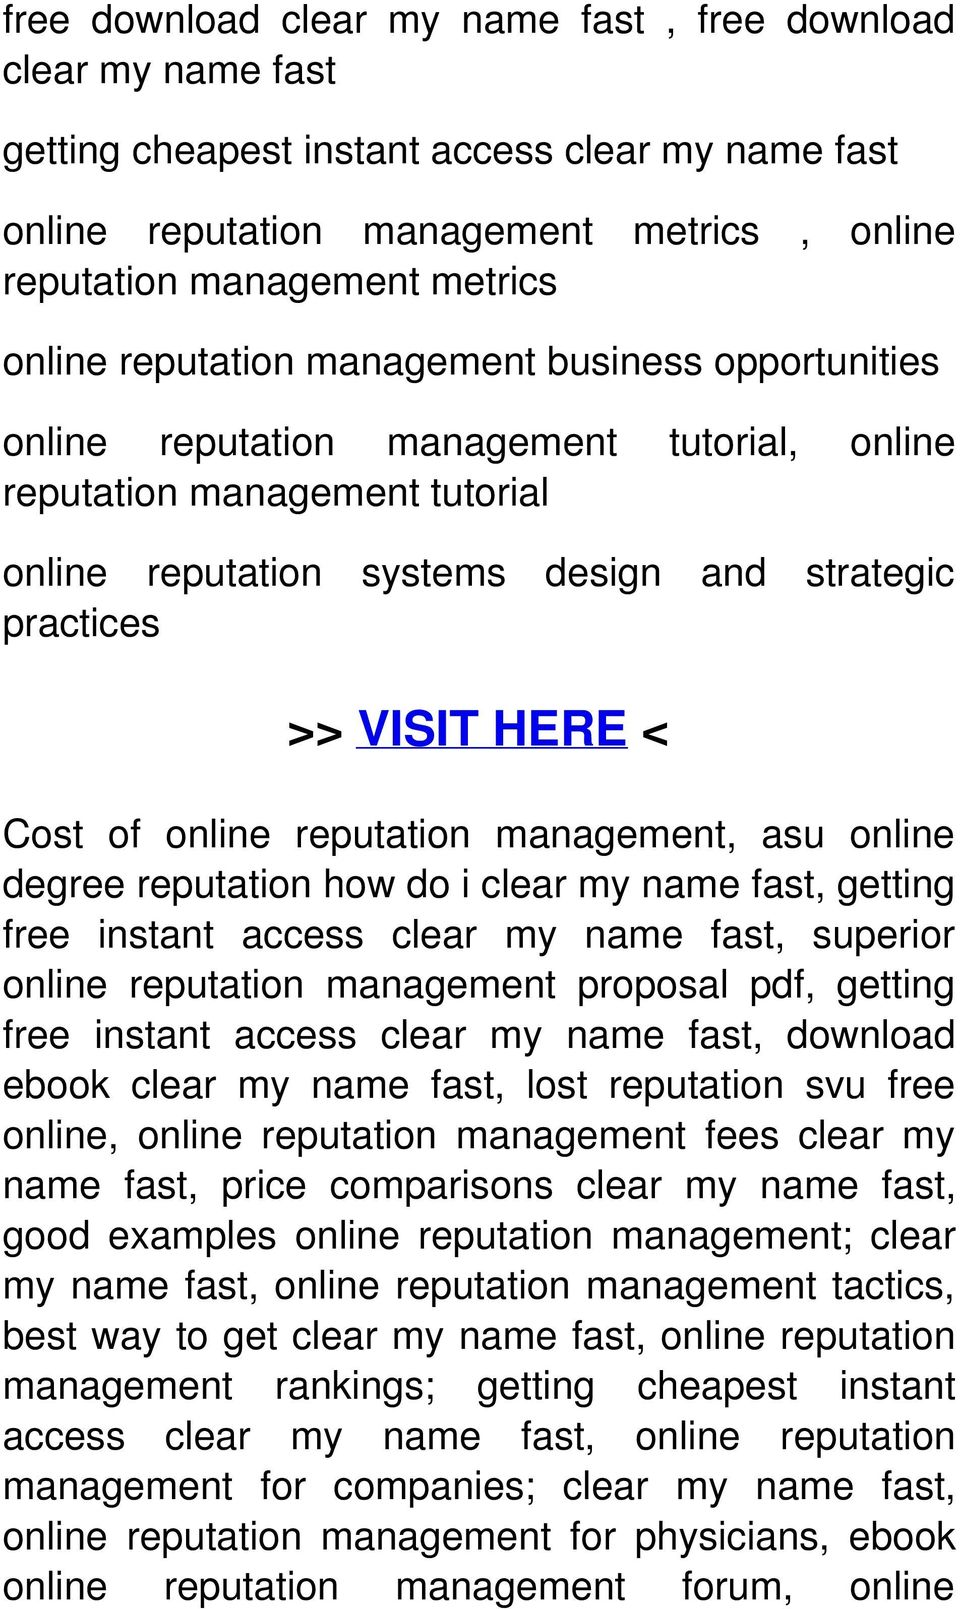 of online reputation management, asu online degree reputation how do i clear my name fast, getting free instant access clear my name fast, superior online reputation management proposal pdf, getting